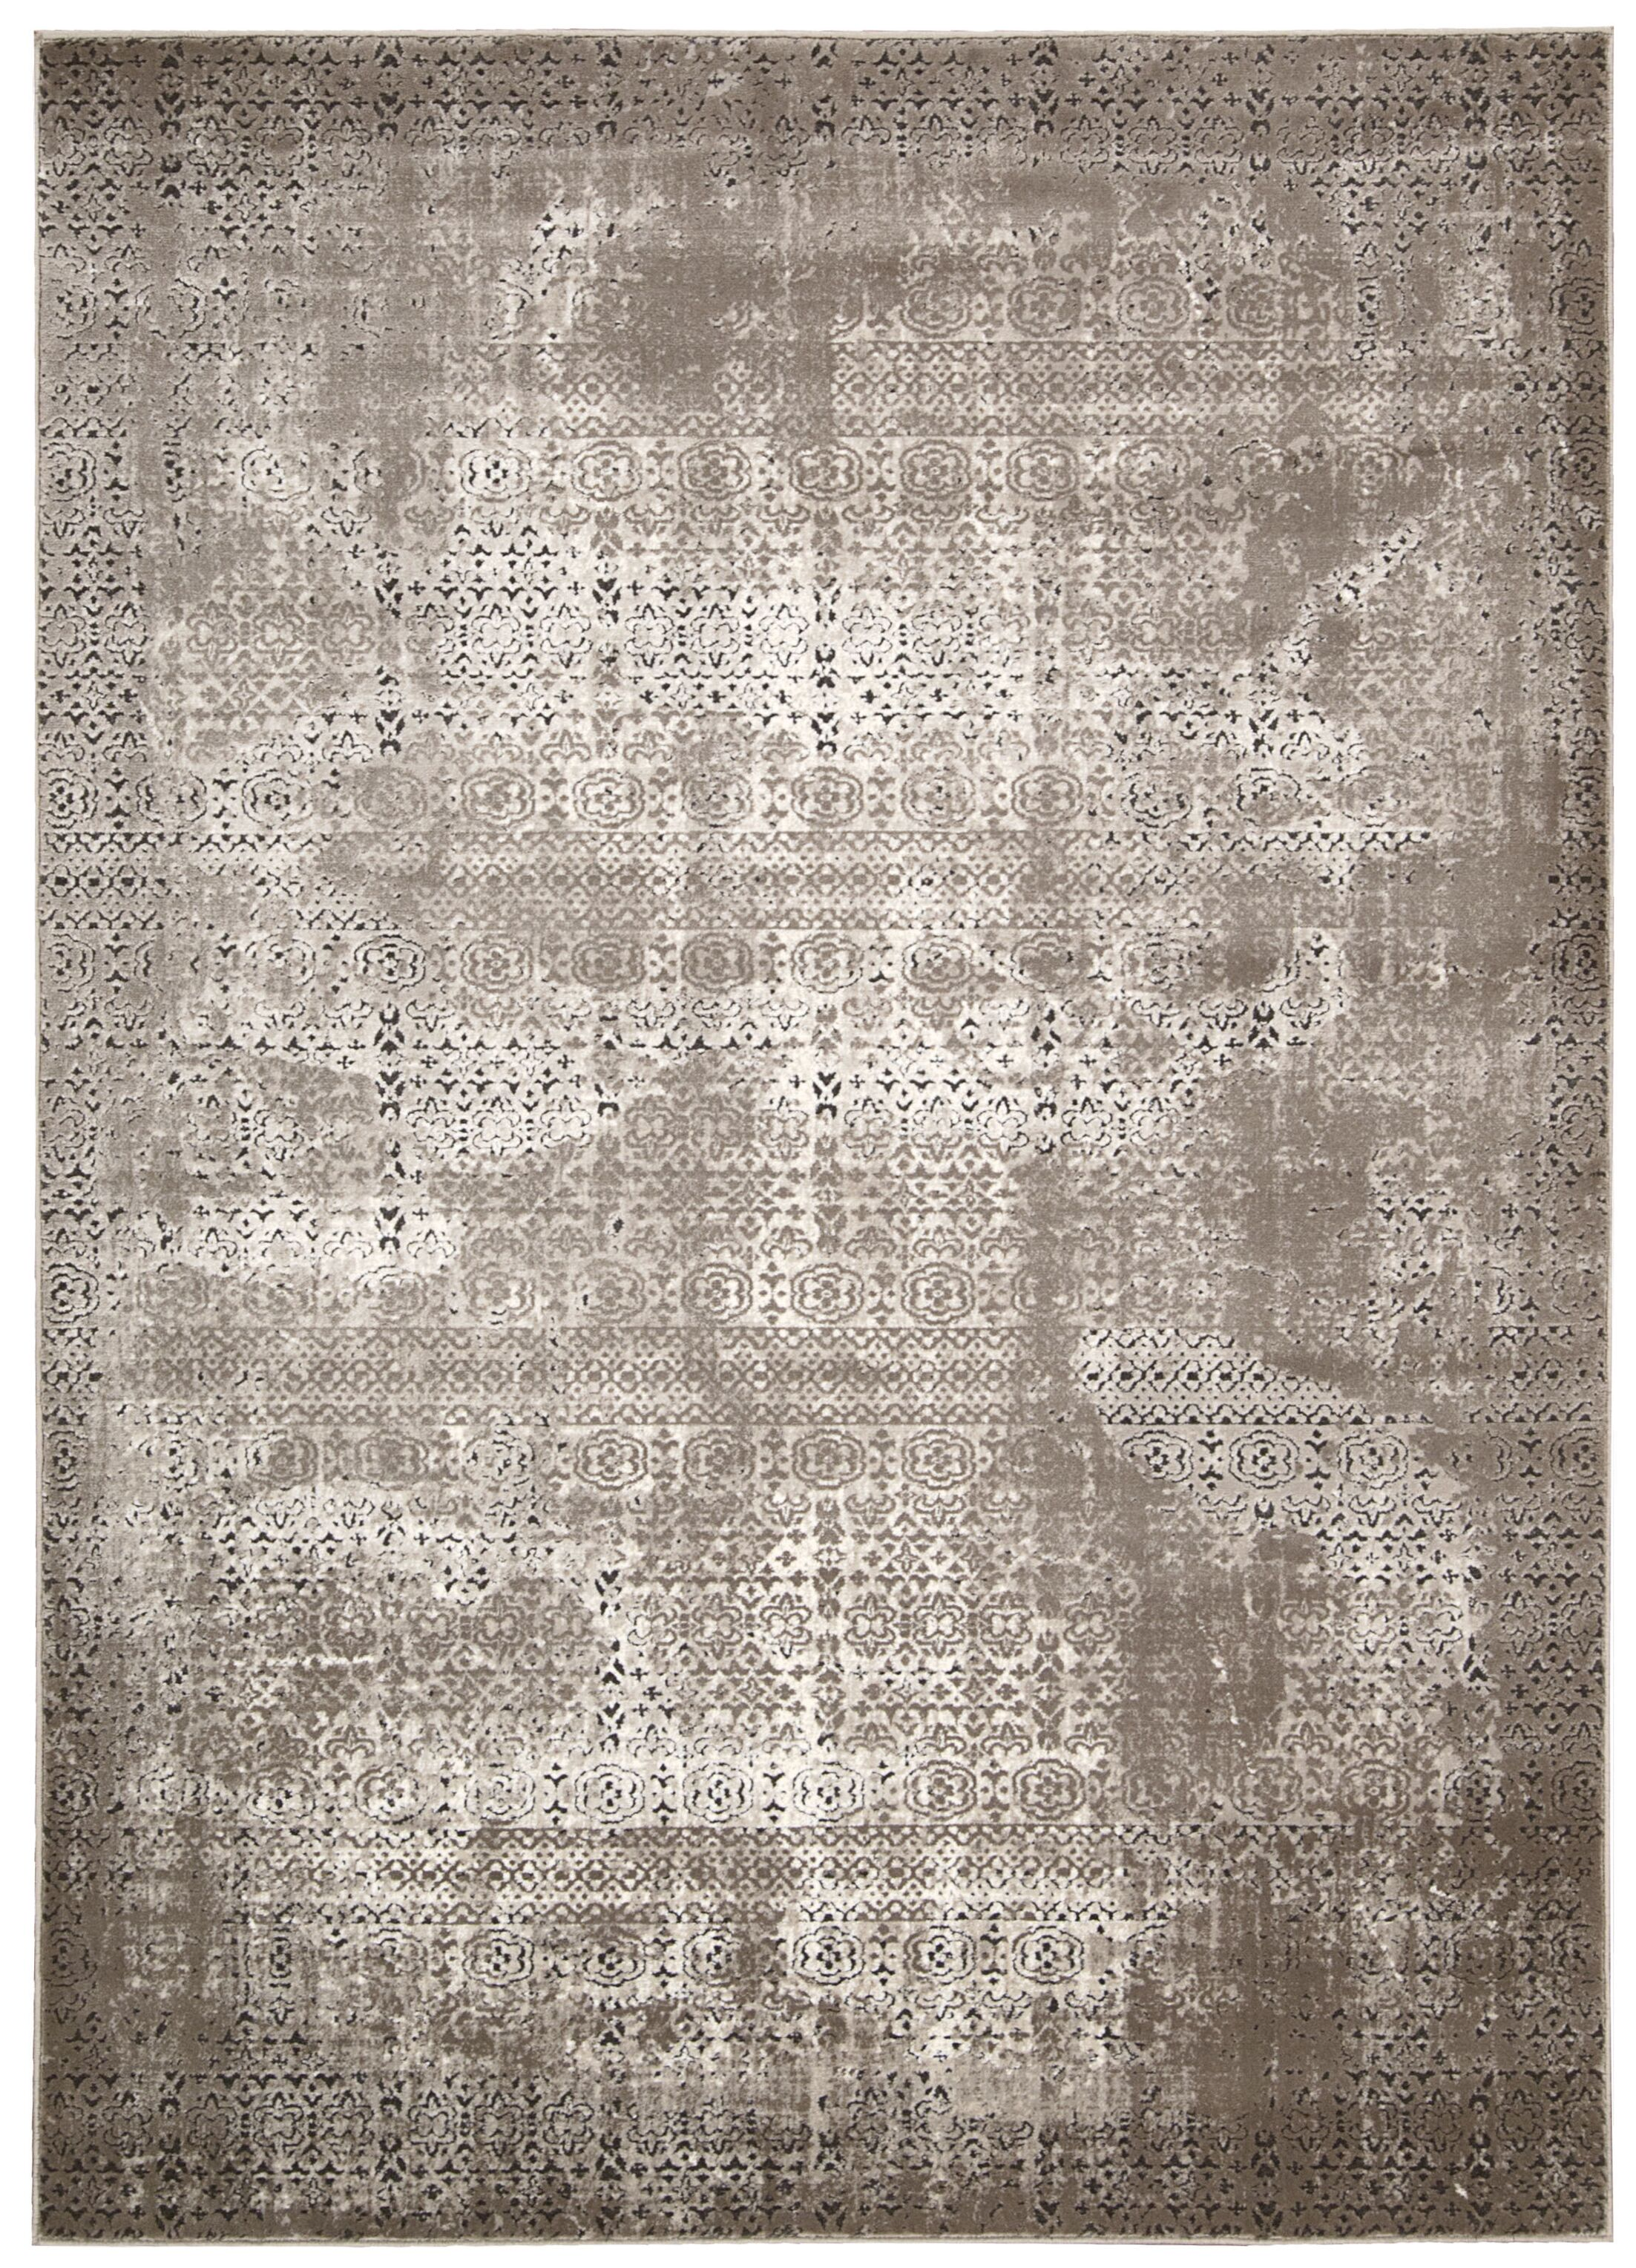 Duncanville Gray Area Rug Rug Size: Rectangle 7'10